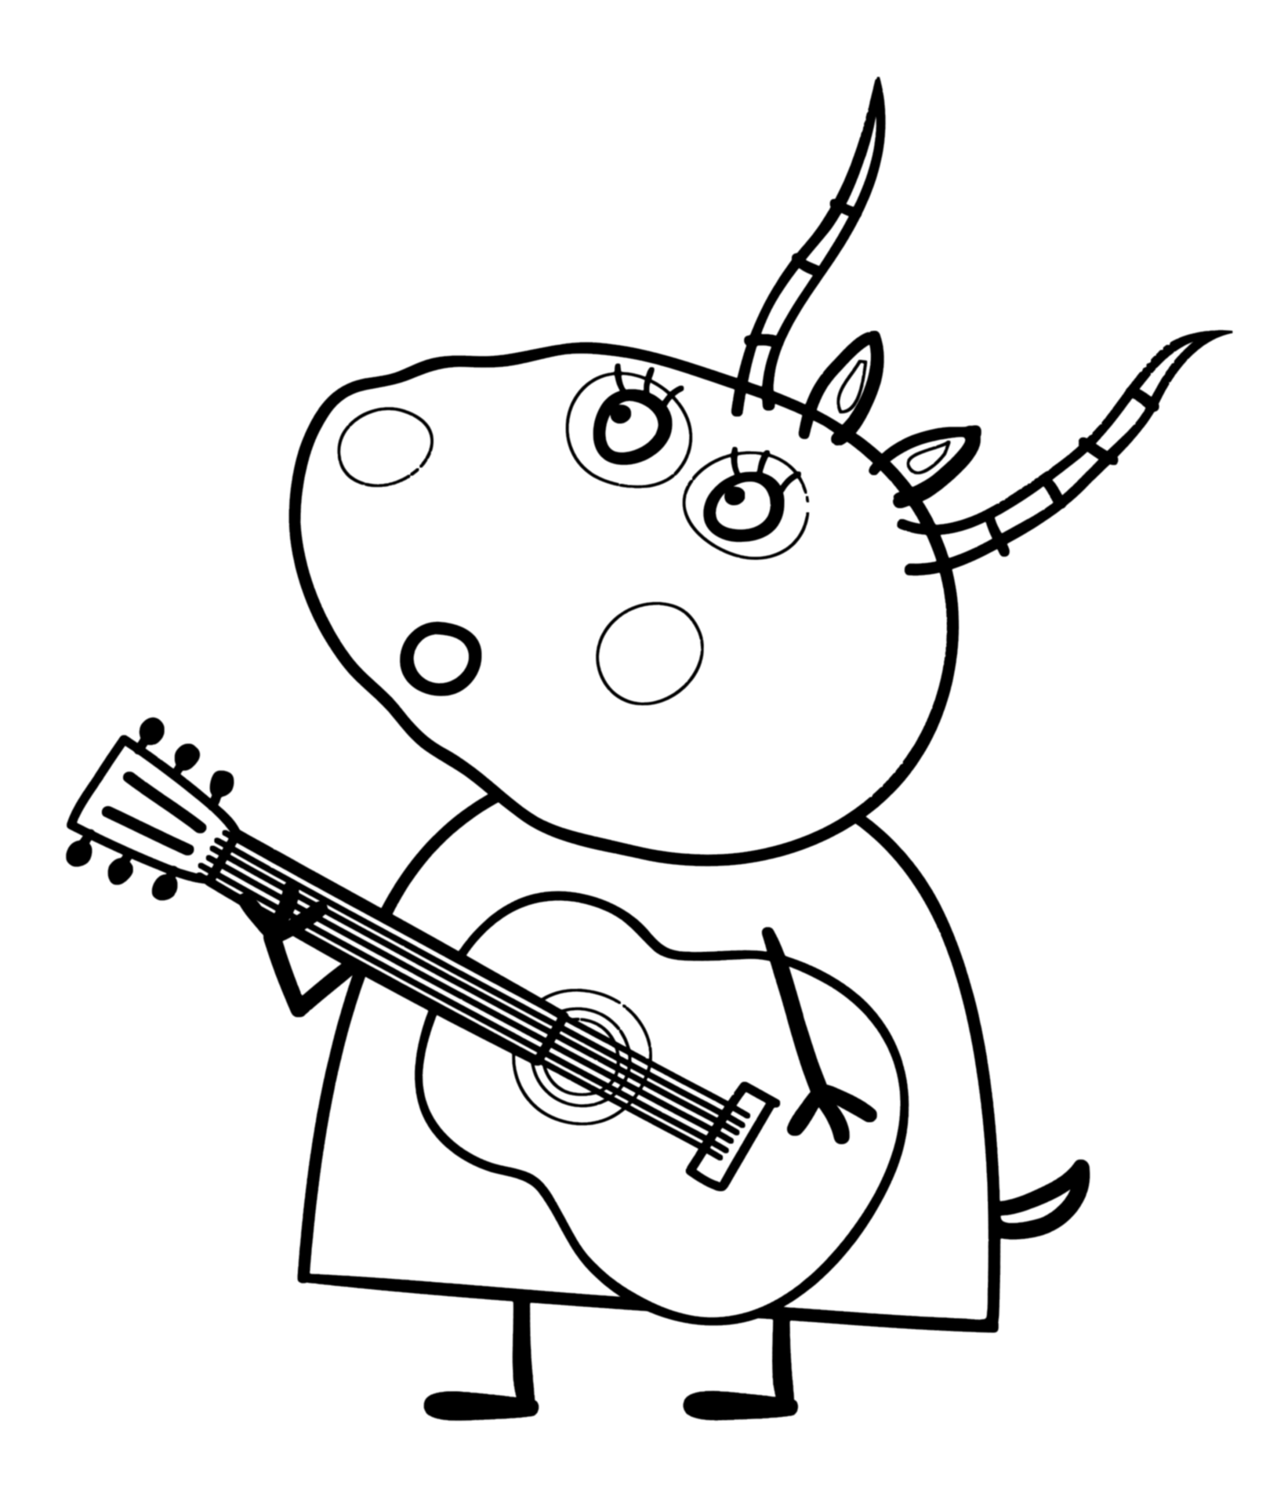 Peppa pig coloring pages online - Best Peppa Pig And Friends Coloring Pages 1